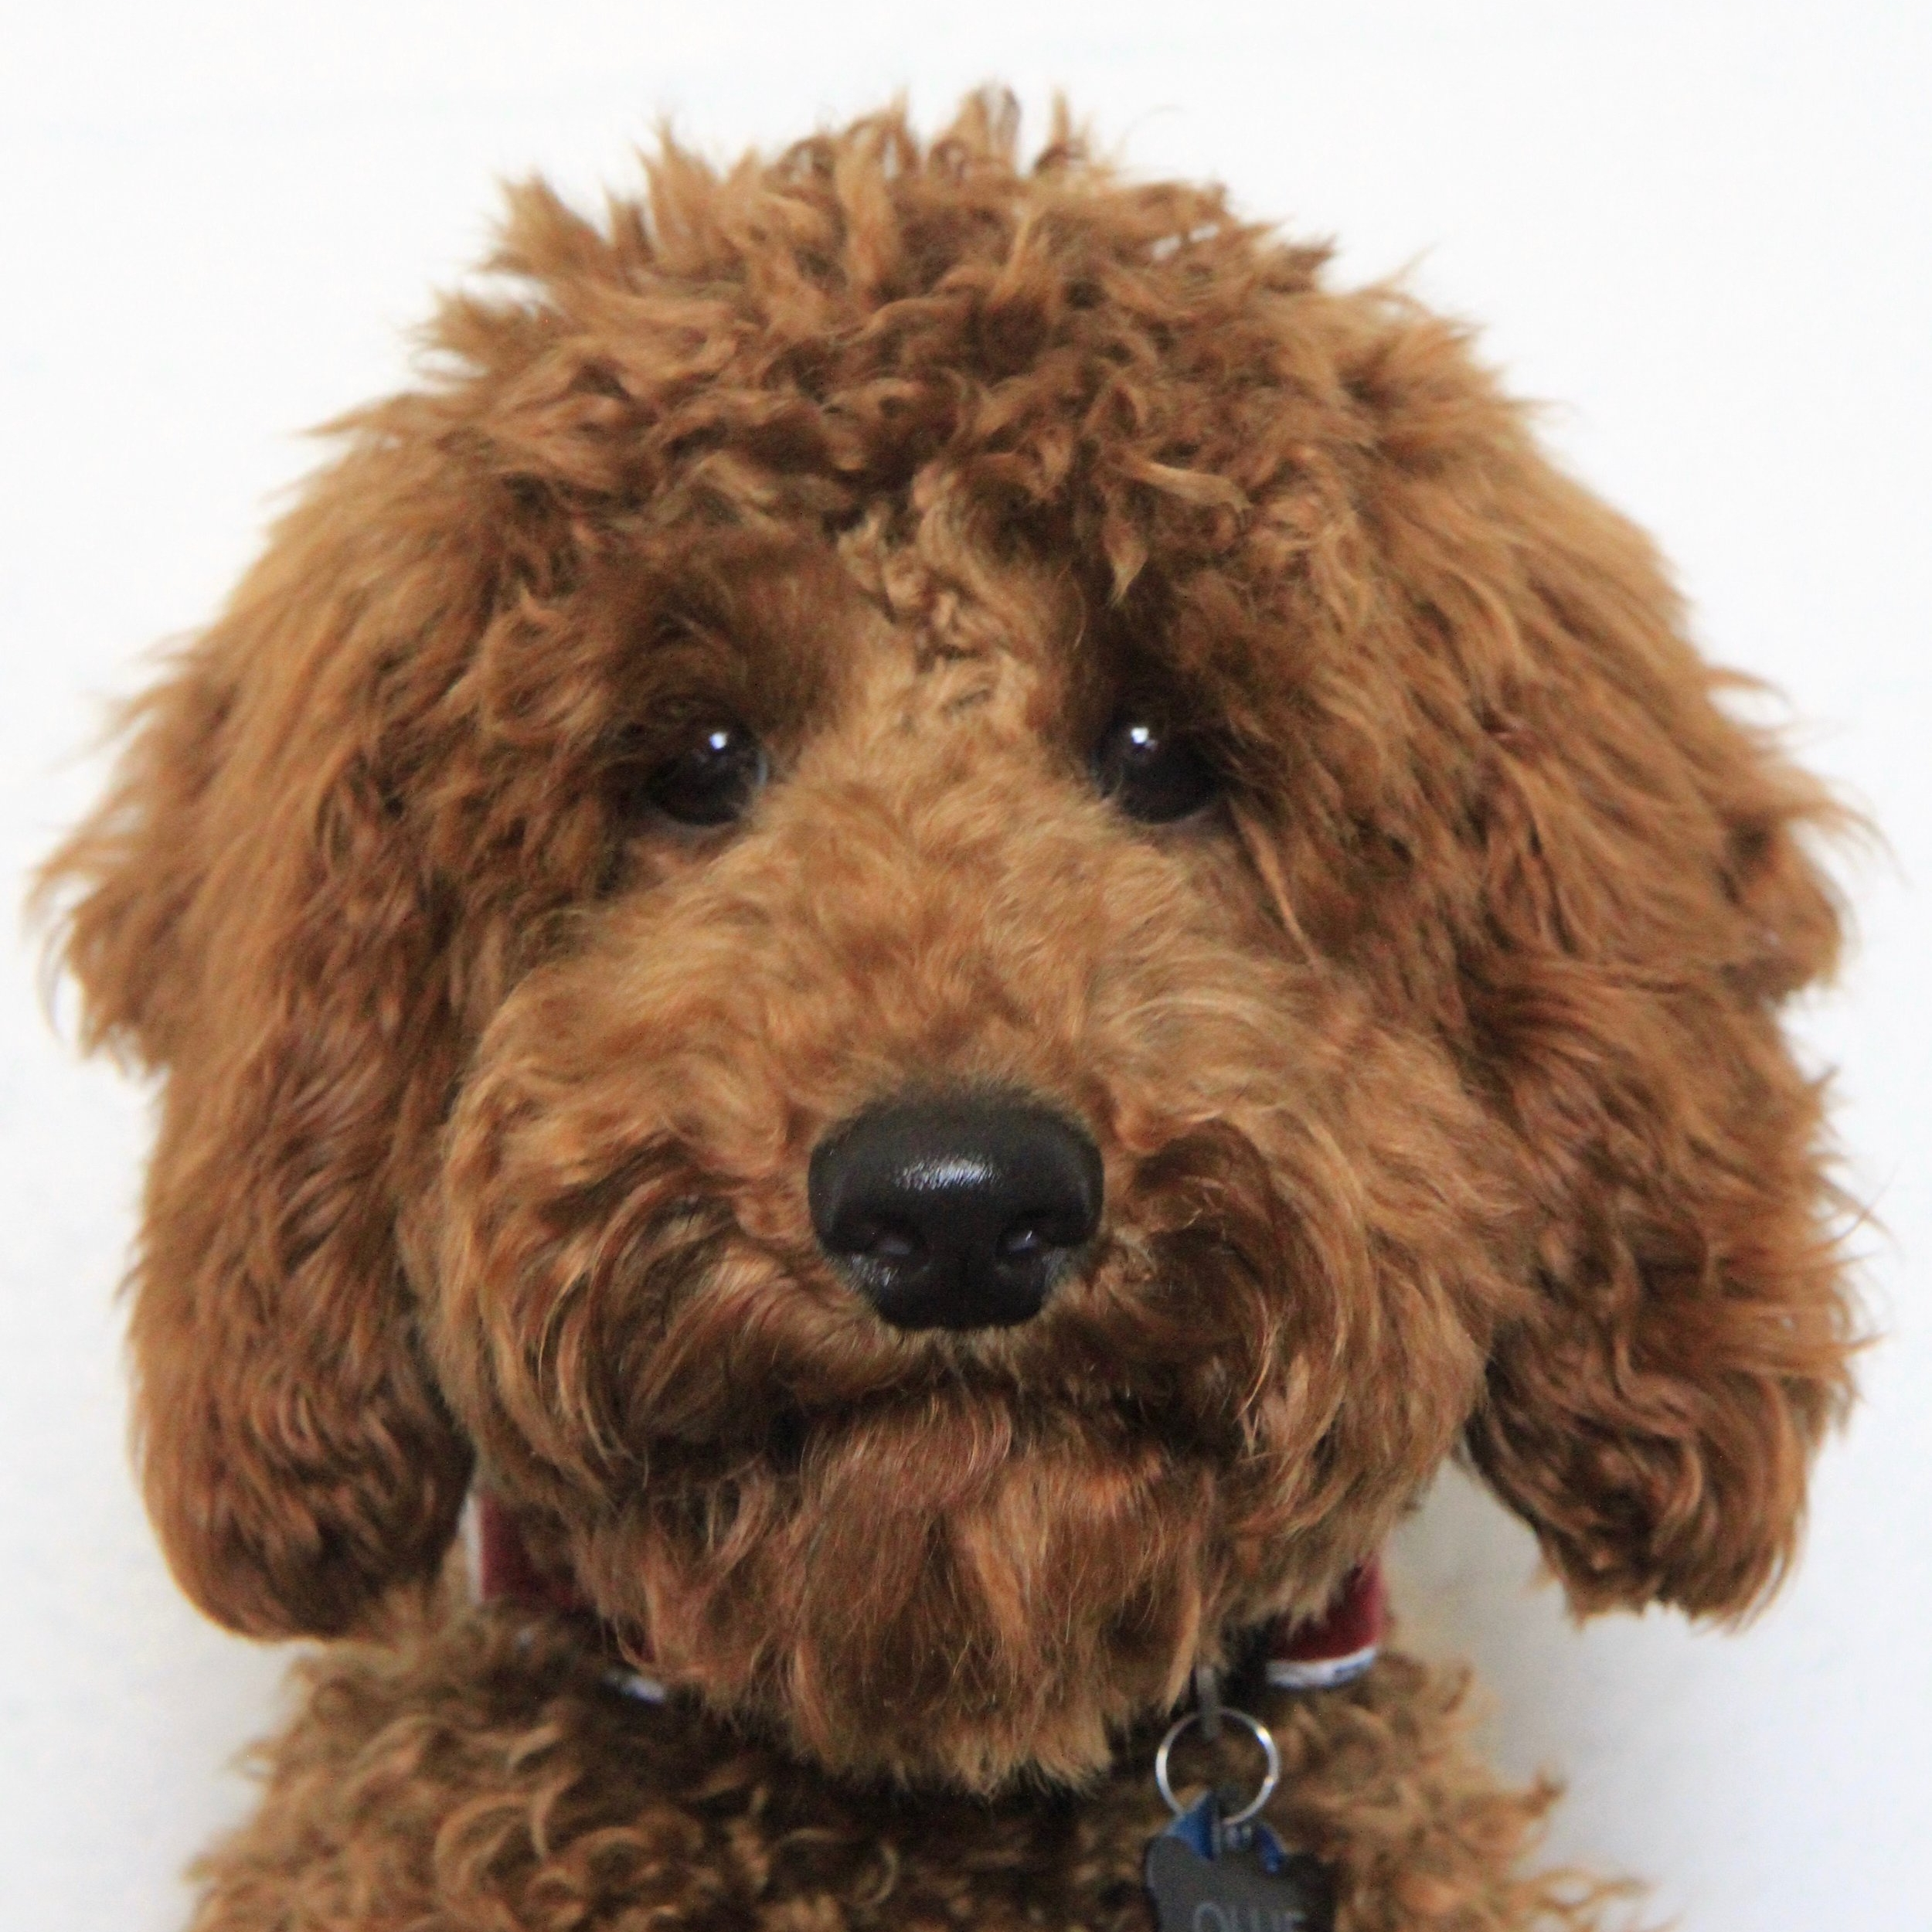 Ollie the Miniature Poodle